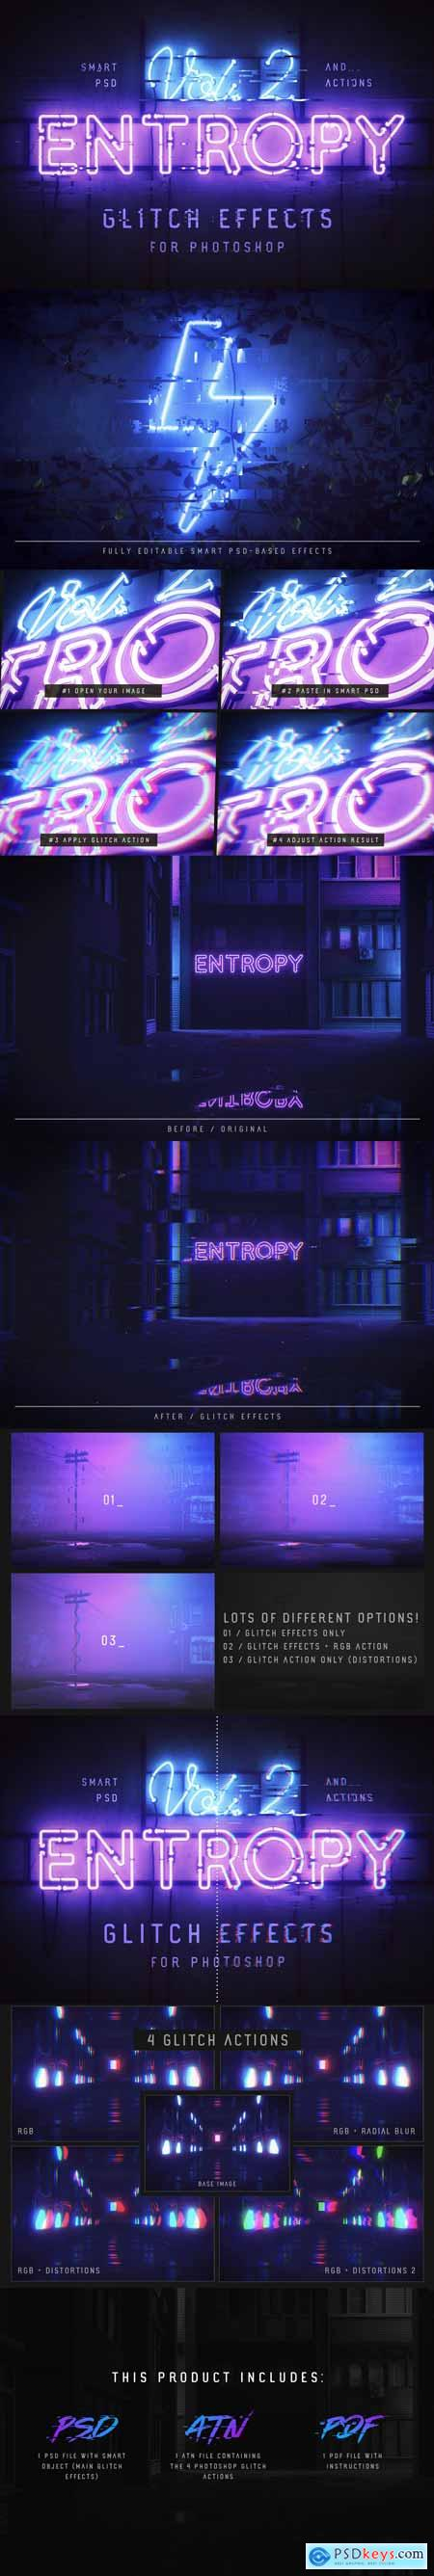 Entropy Volume II PS glitch effects 3376655